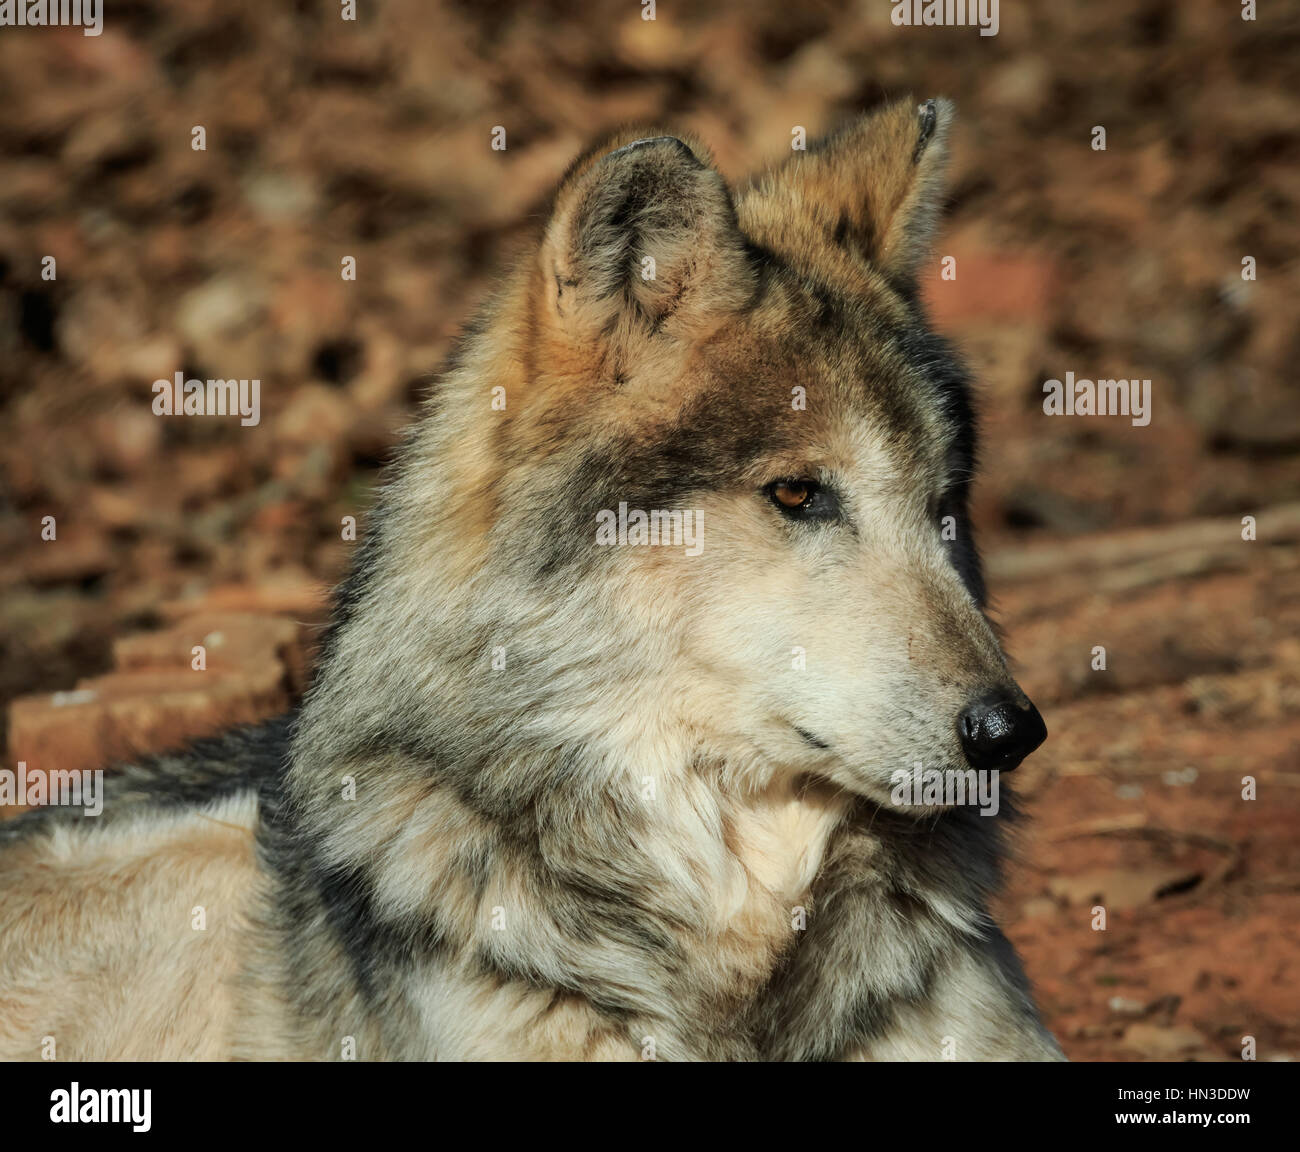 A Mexican Grey Wolf from the Oklahoma City zoo. - Stock Image